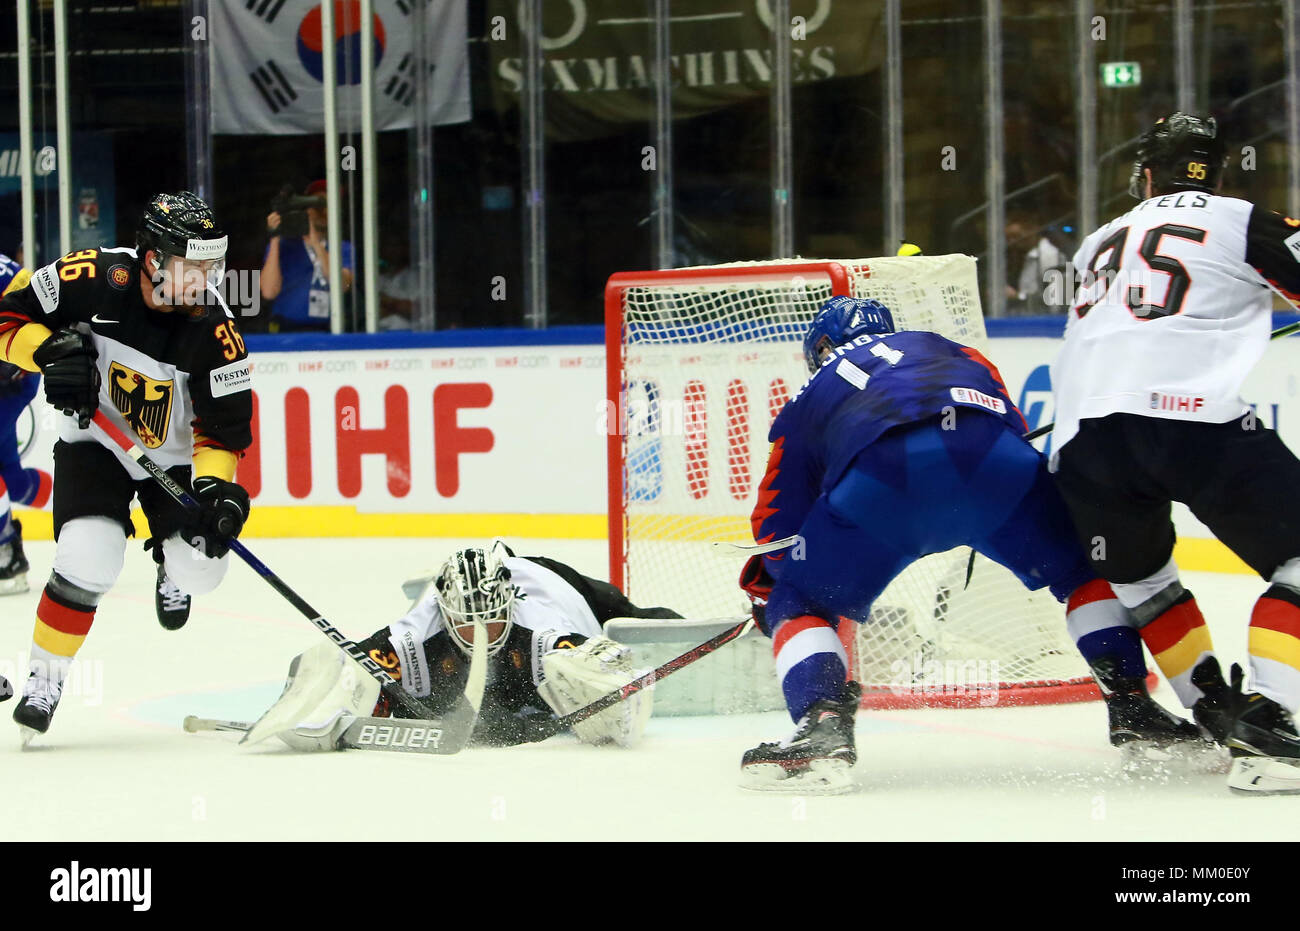 May 9, 2018 - Herning, Denmark - from left Yannic SEIDENBERG (GER), Niklas TREUTLE (GER), Kisung KIM (KOR), Frederik TRIFFELS (GER), .May 09, 2018, Ice Hockey World Championship 2018,Germany vs Korea, Jyske Bank Boxen, Herning/Denmark, (Credit Image: © Wolfgang Fehrmann via ZUMA Wire) Stock Photo